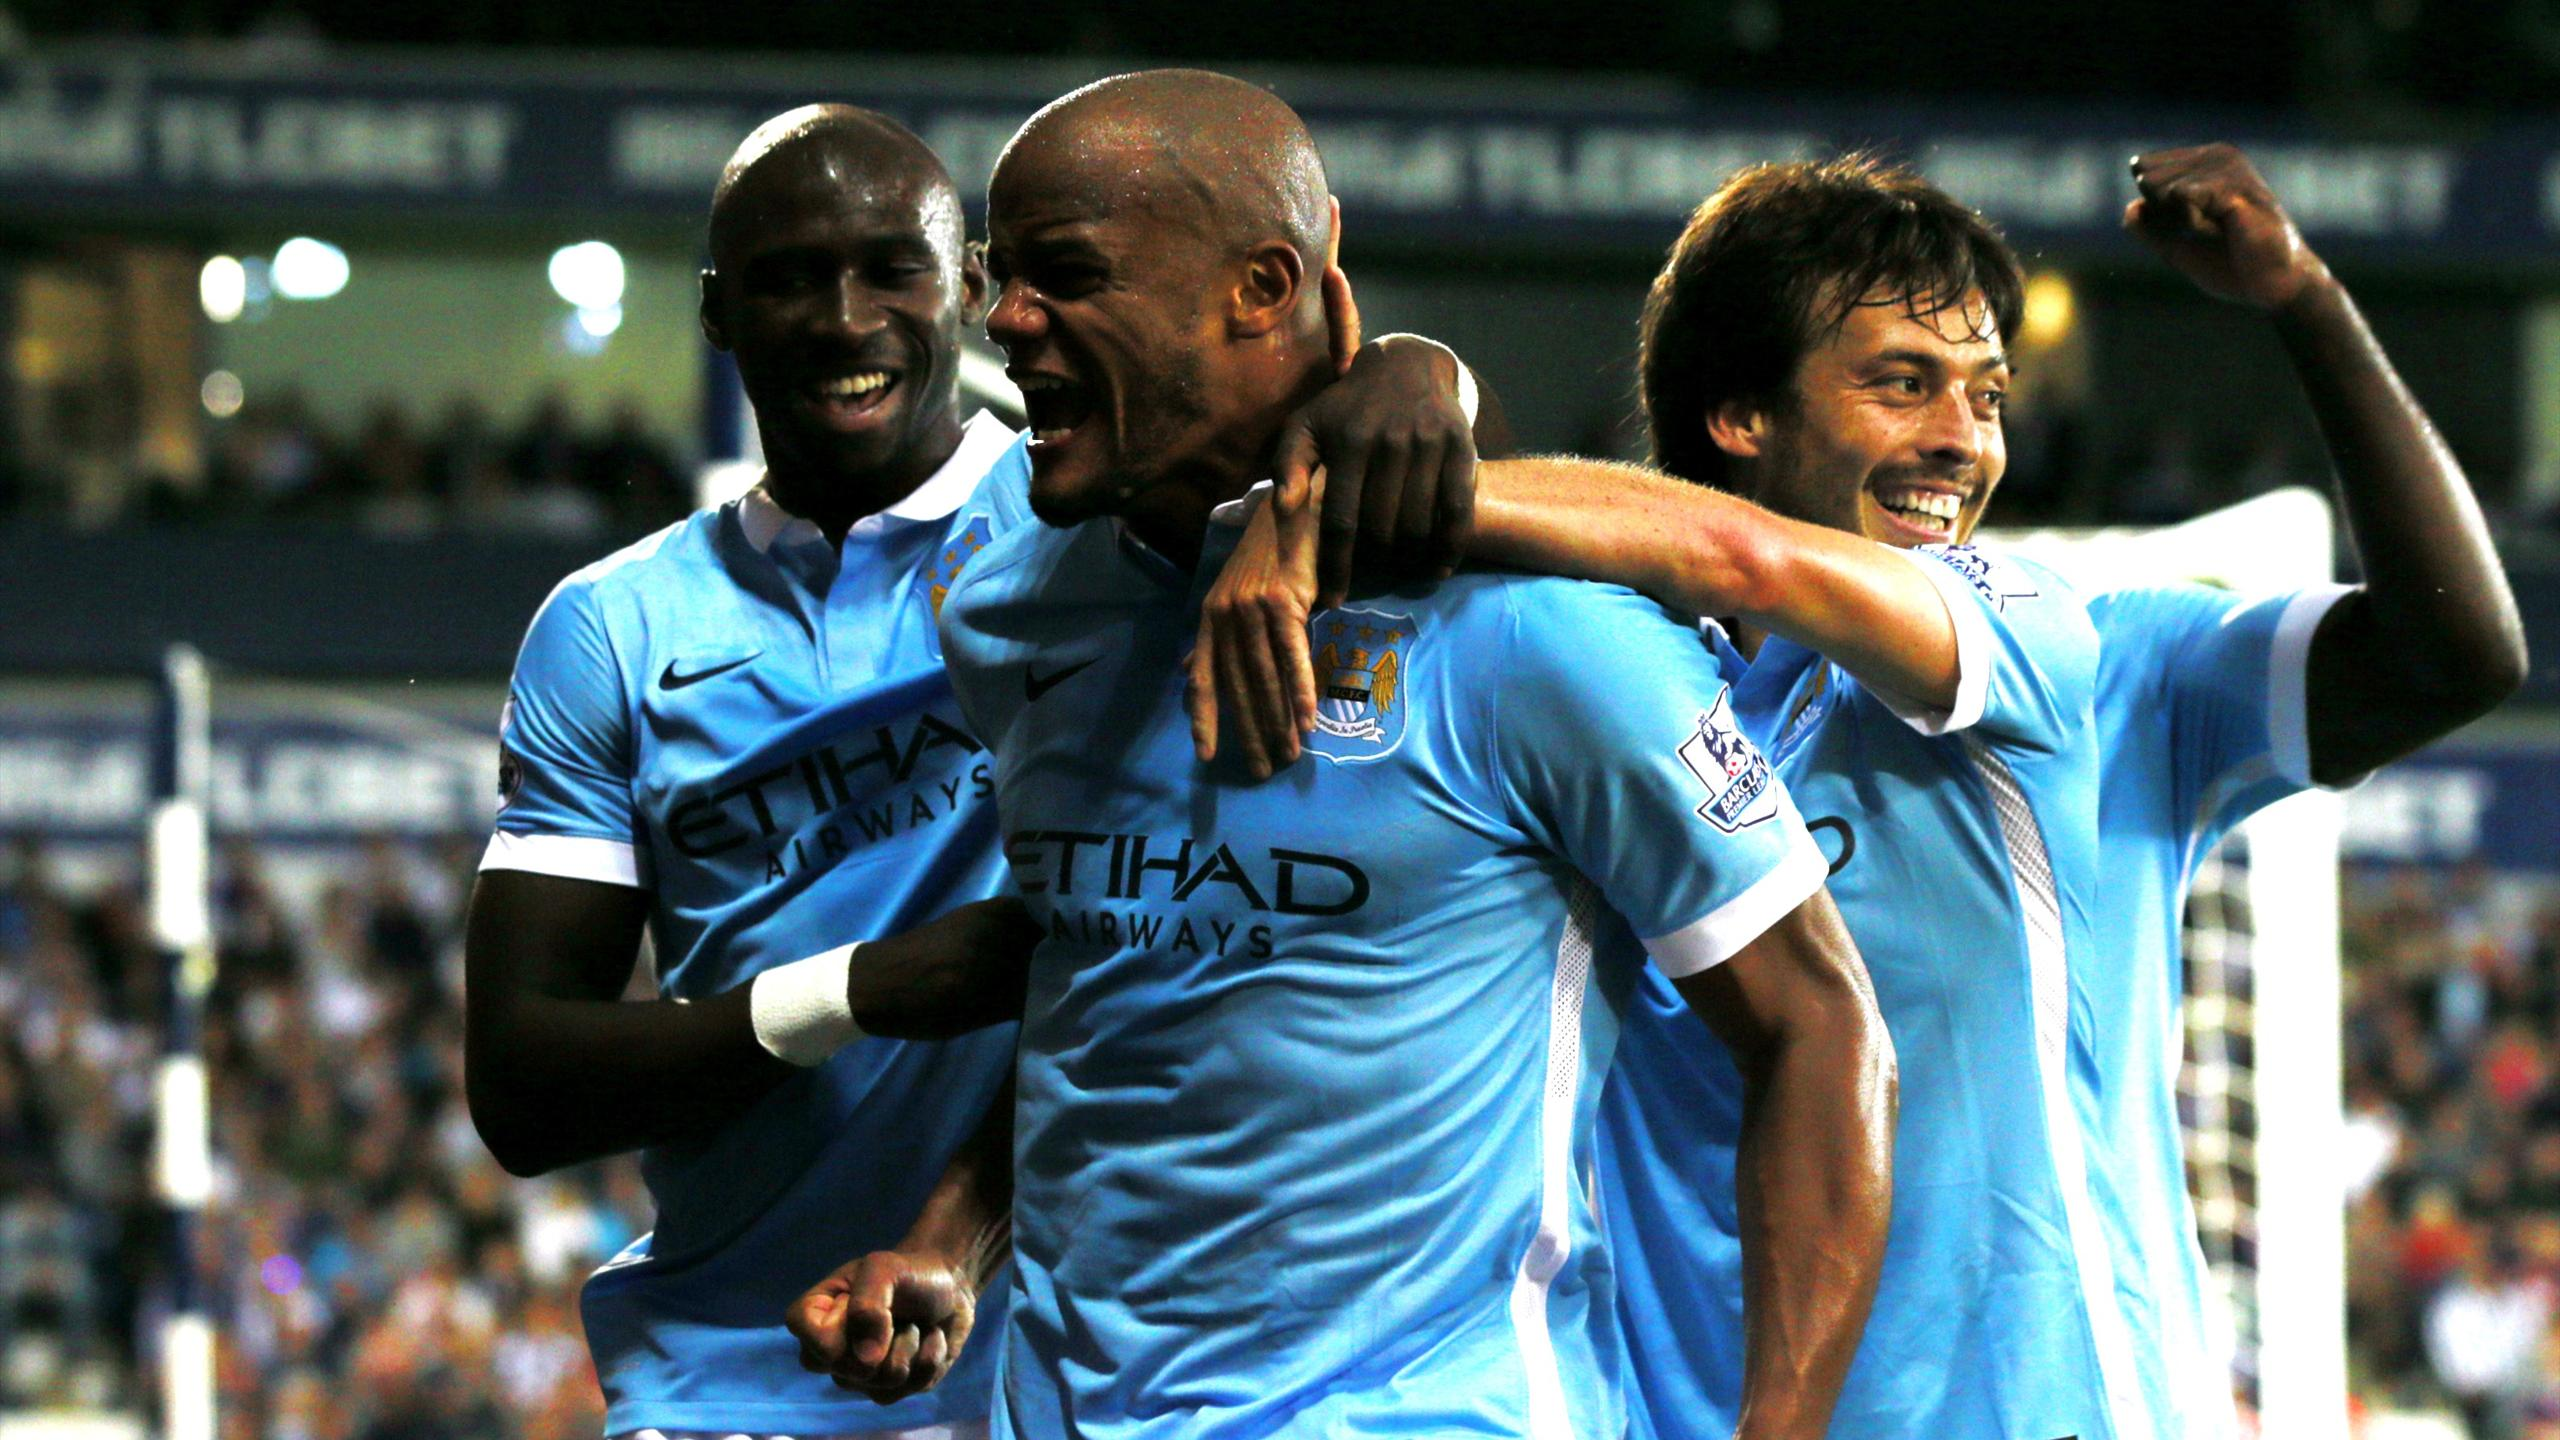 Vincent Kompany celebrates with team-mates after scoring the third goal for Manchester City against West Brom